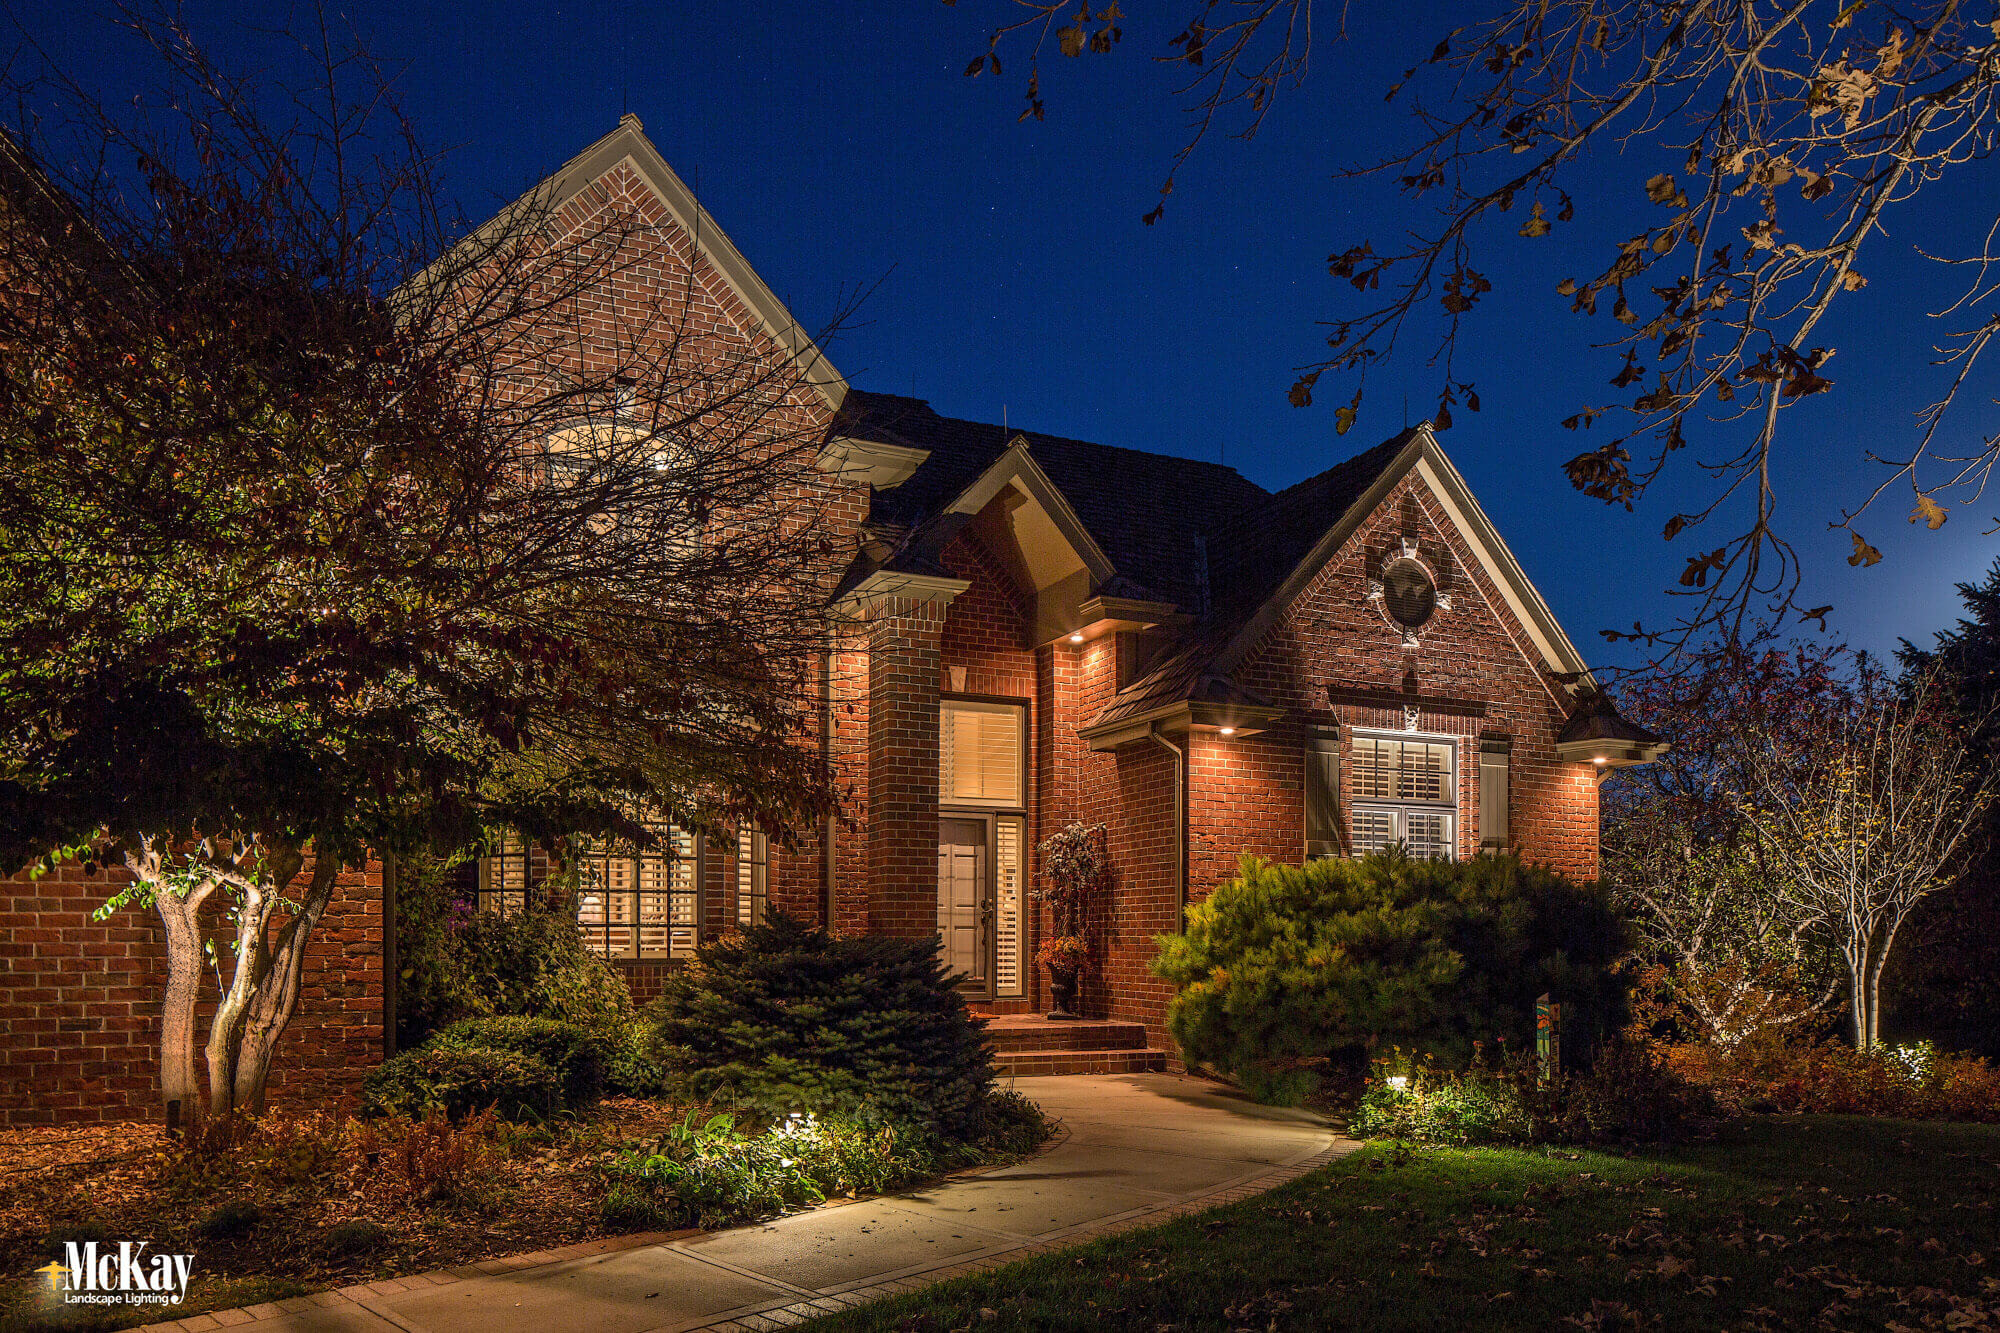 Landscape Lighting LED Upgrade Omaha Nebraska